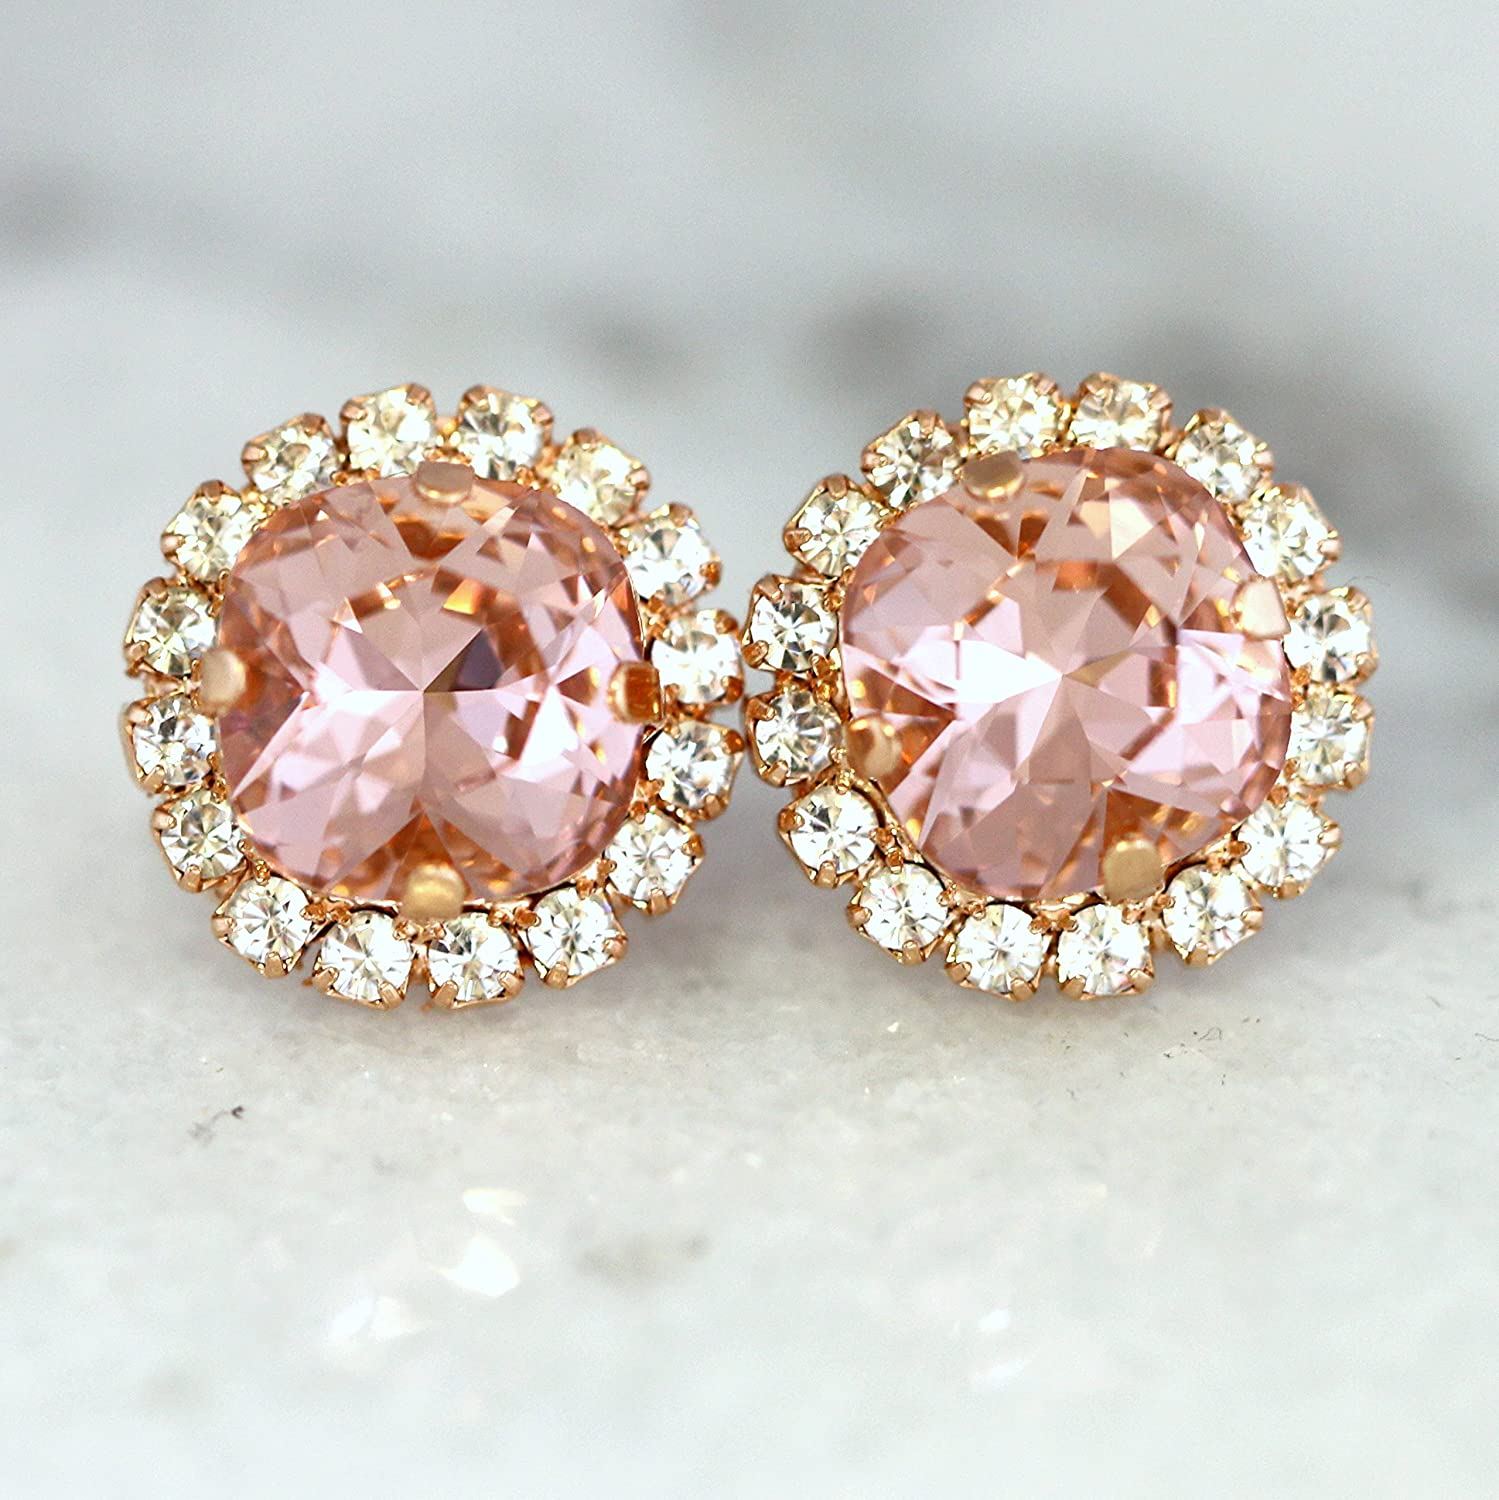 5230217cb8408 Amazon.com: Handmade Bridal Blush Pink Stud Earrings, Rose Gold ...